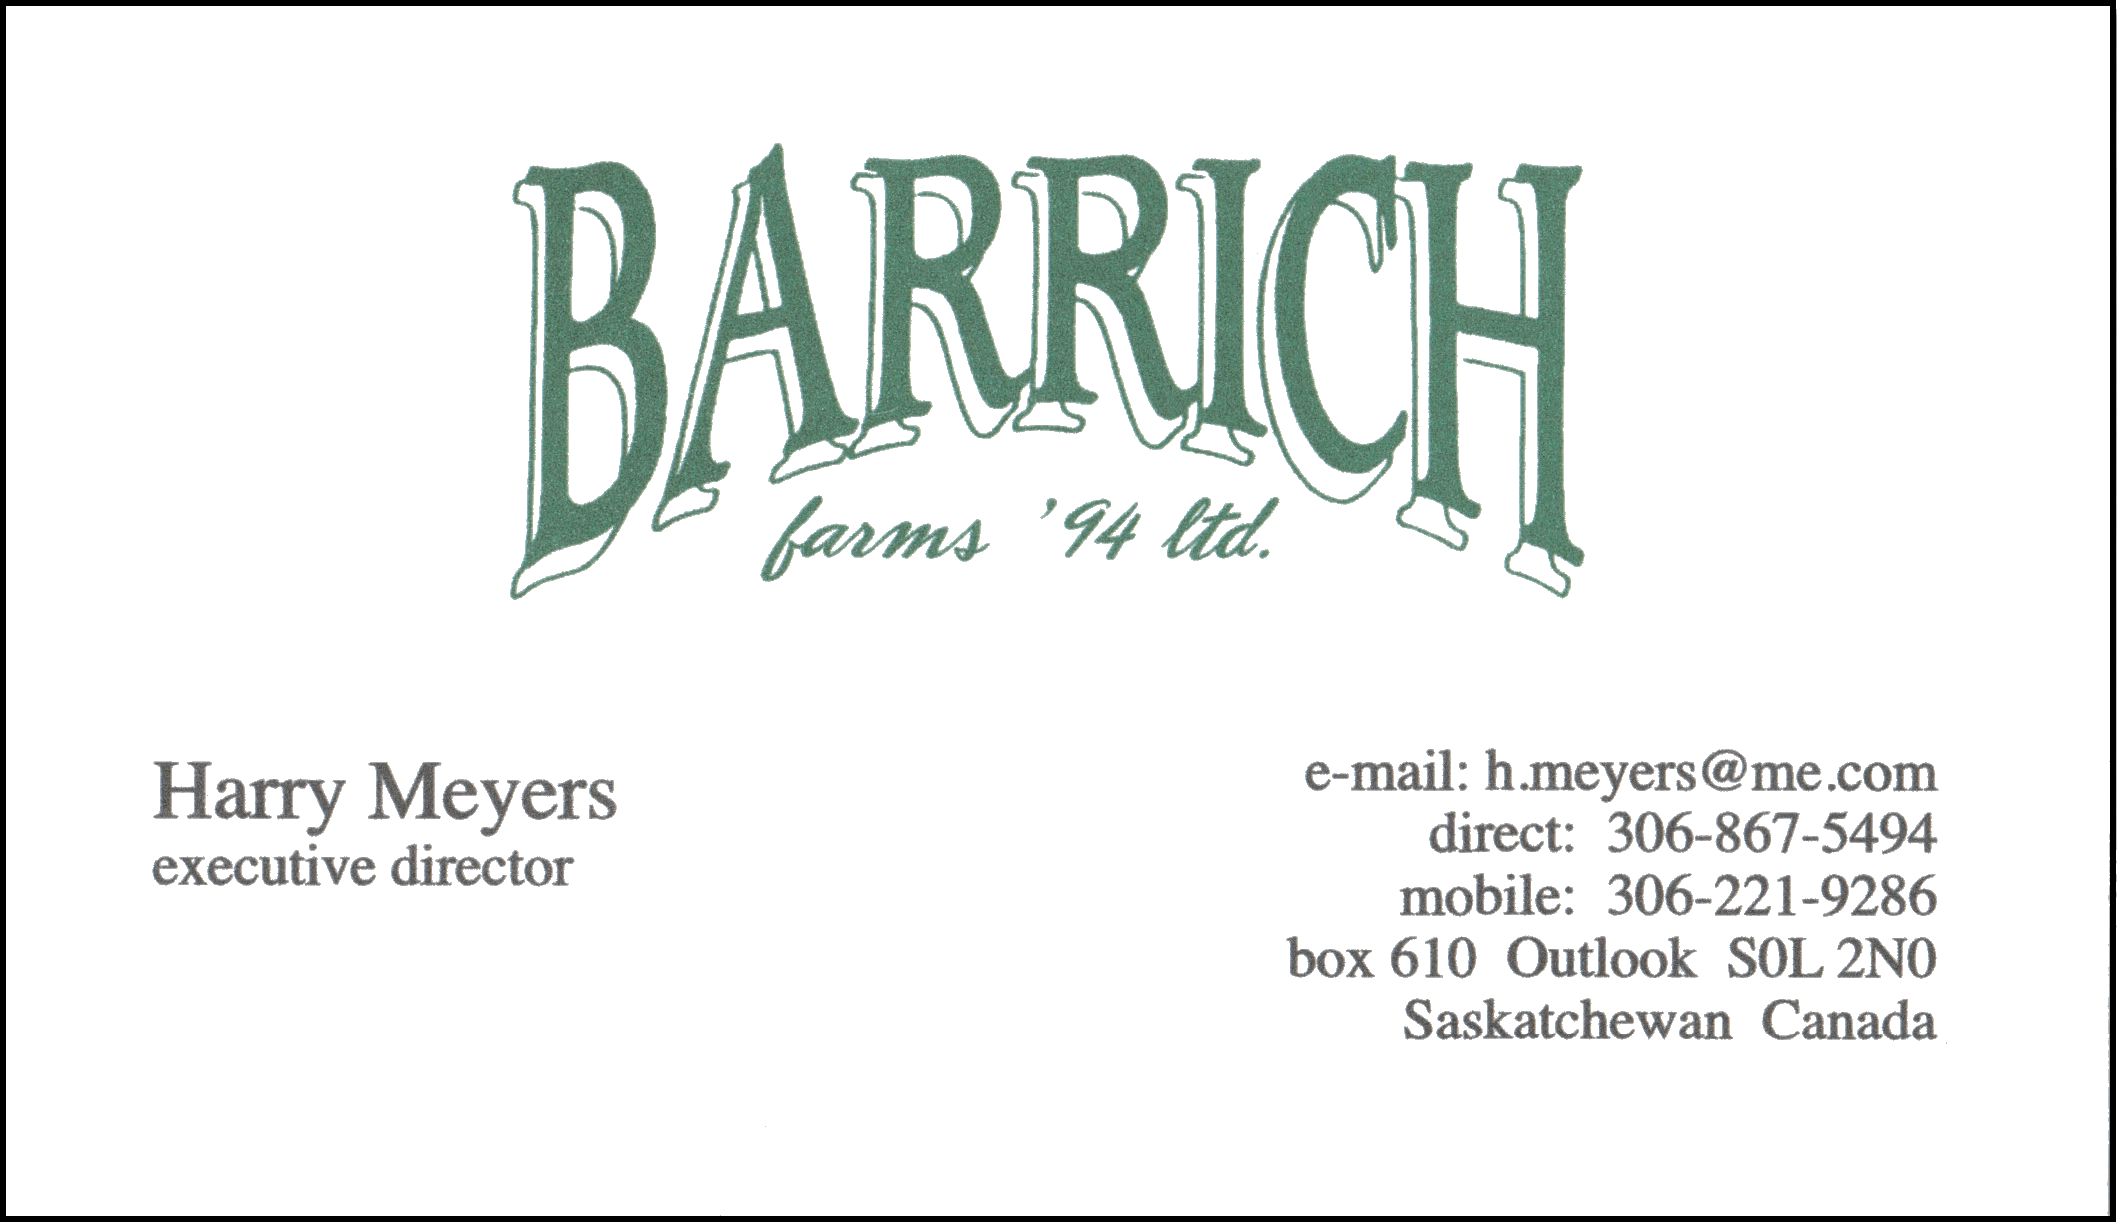 Barrich Farms '94 Ltd.